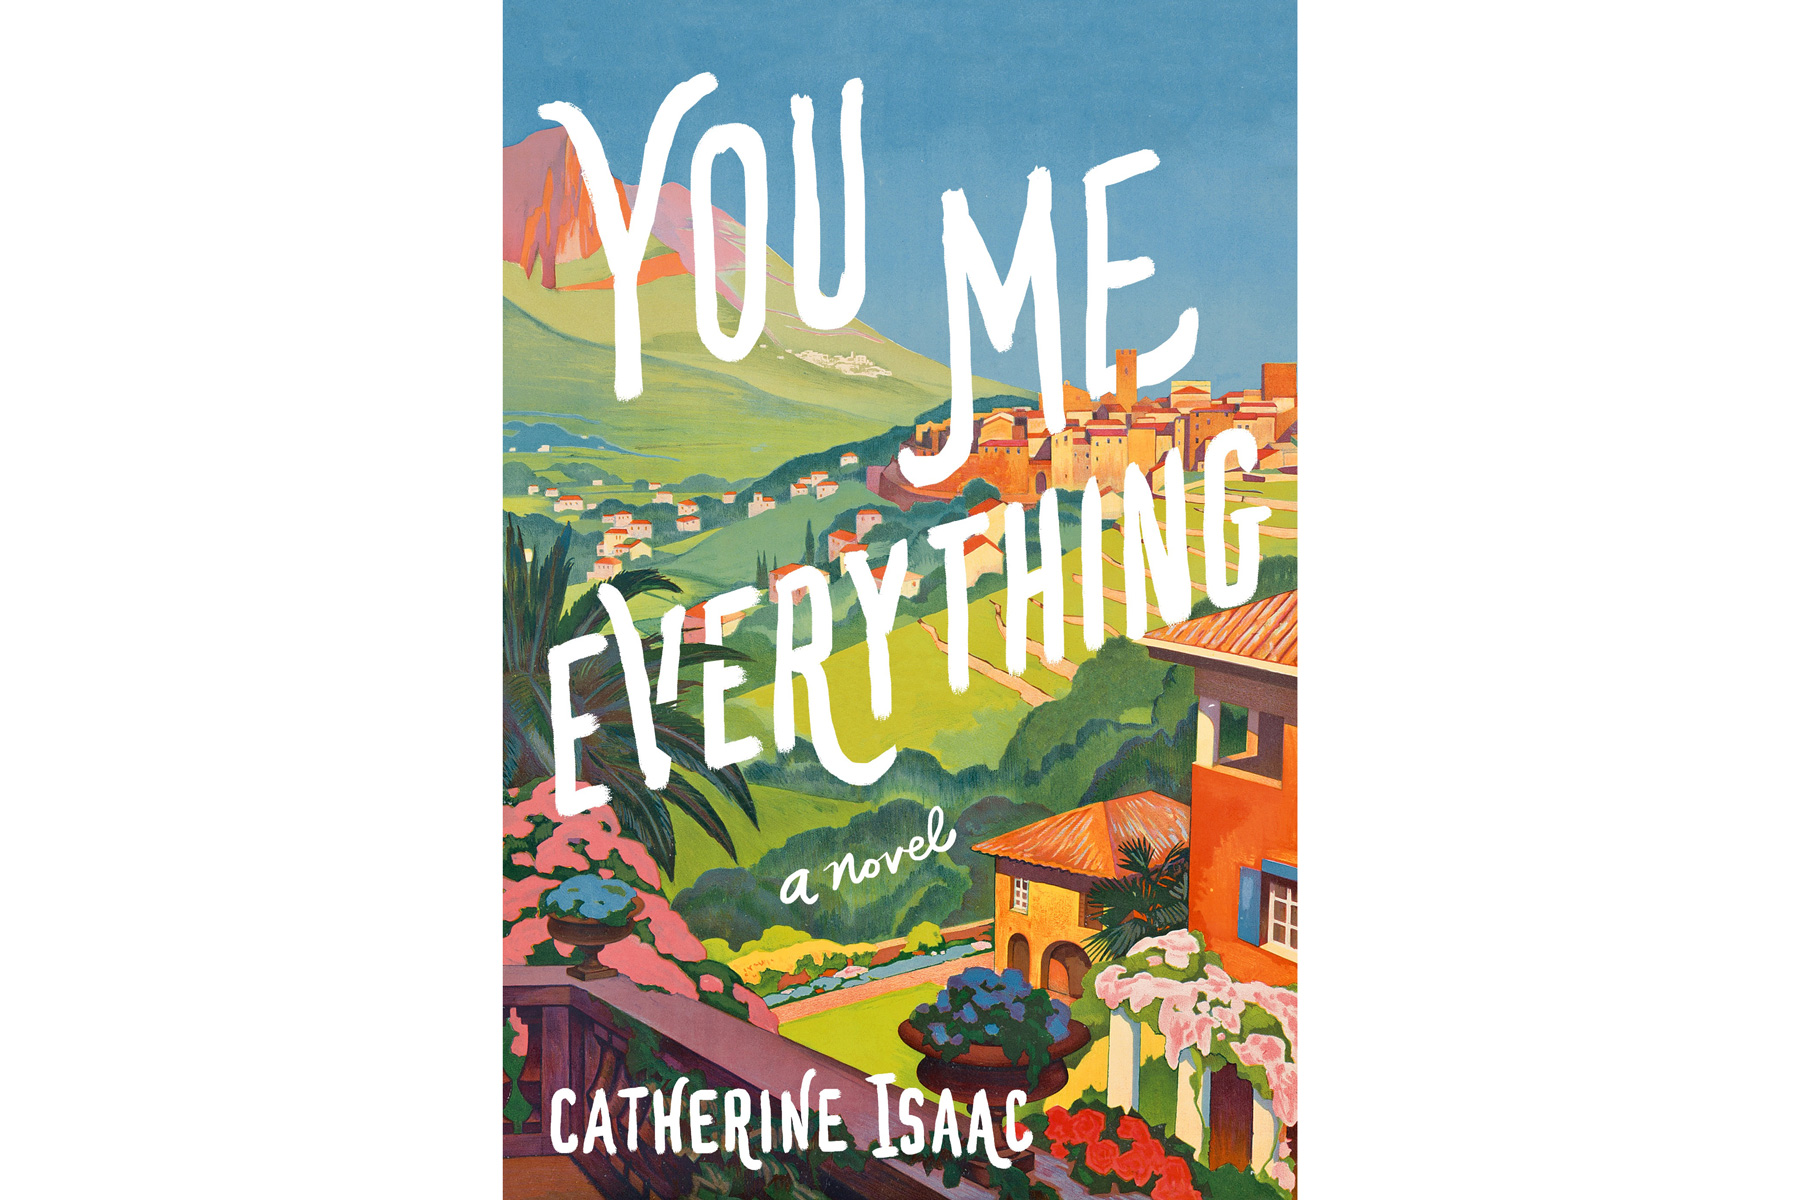 You Me Everything, by Catherine Isaac